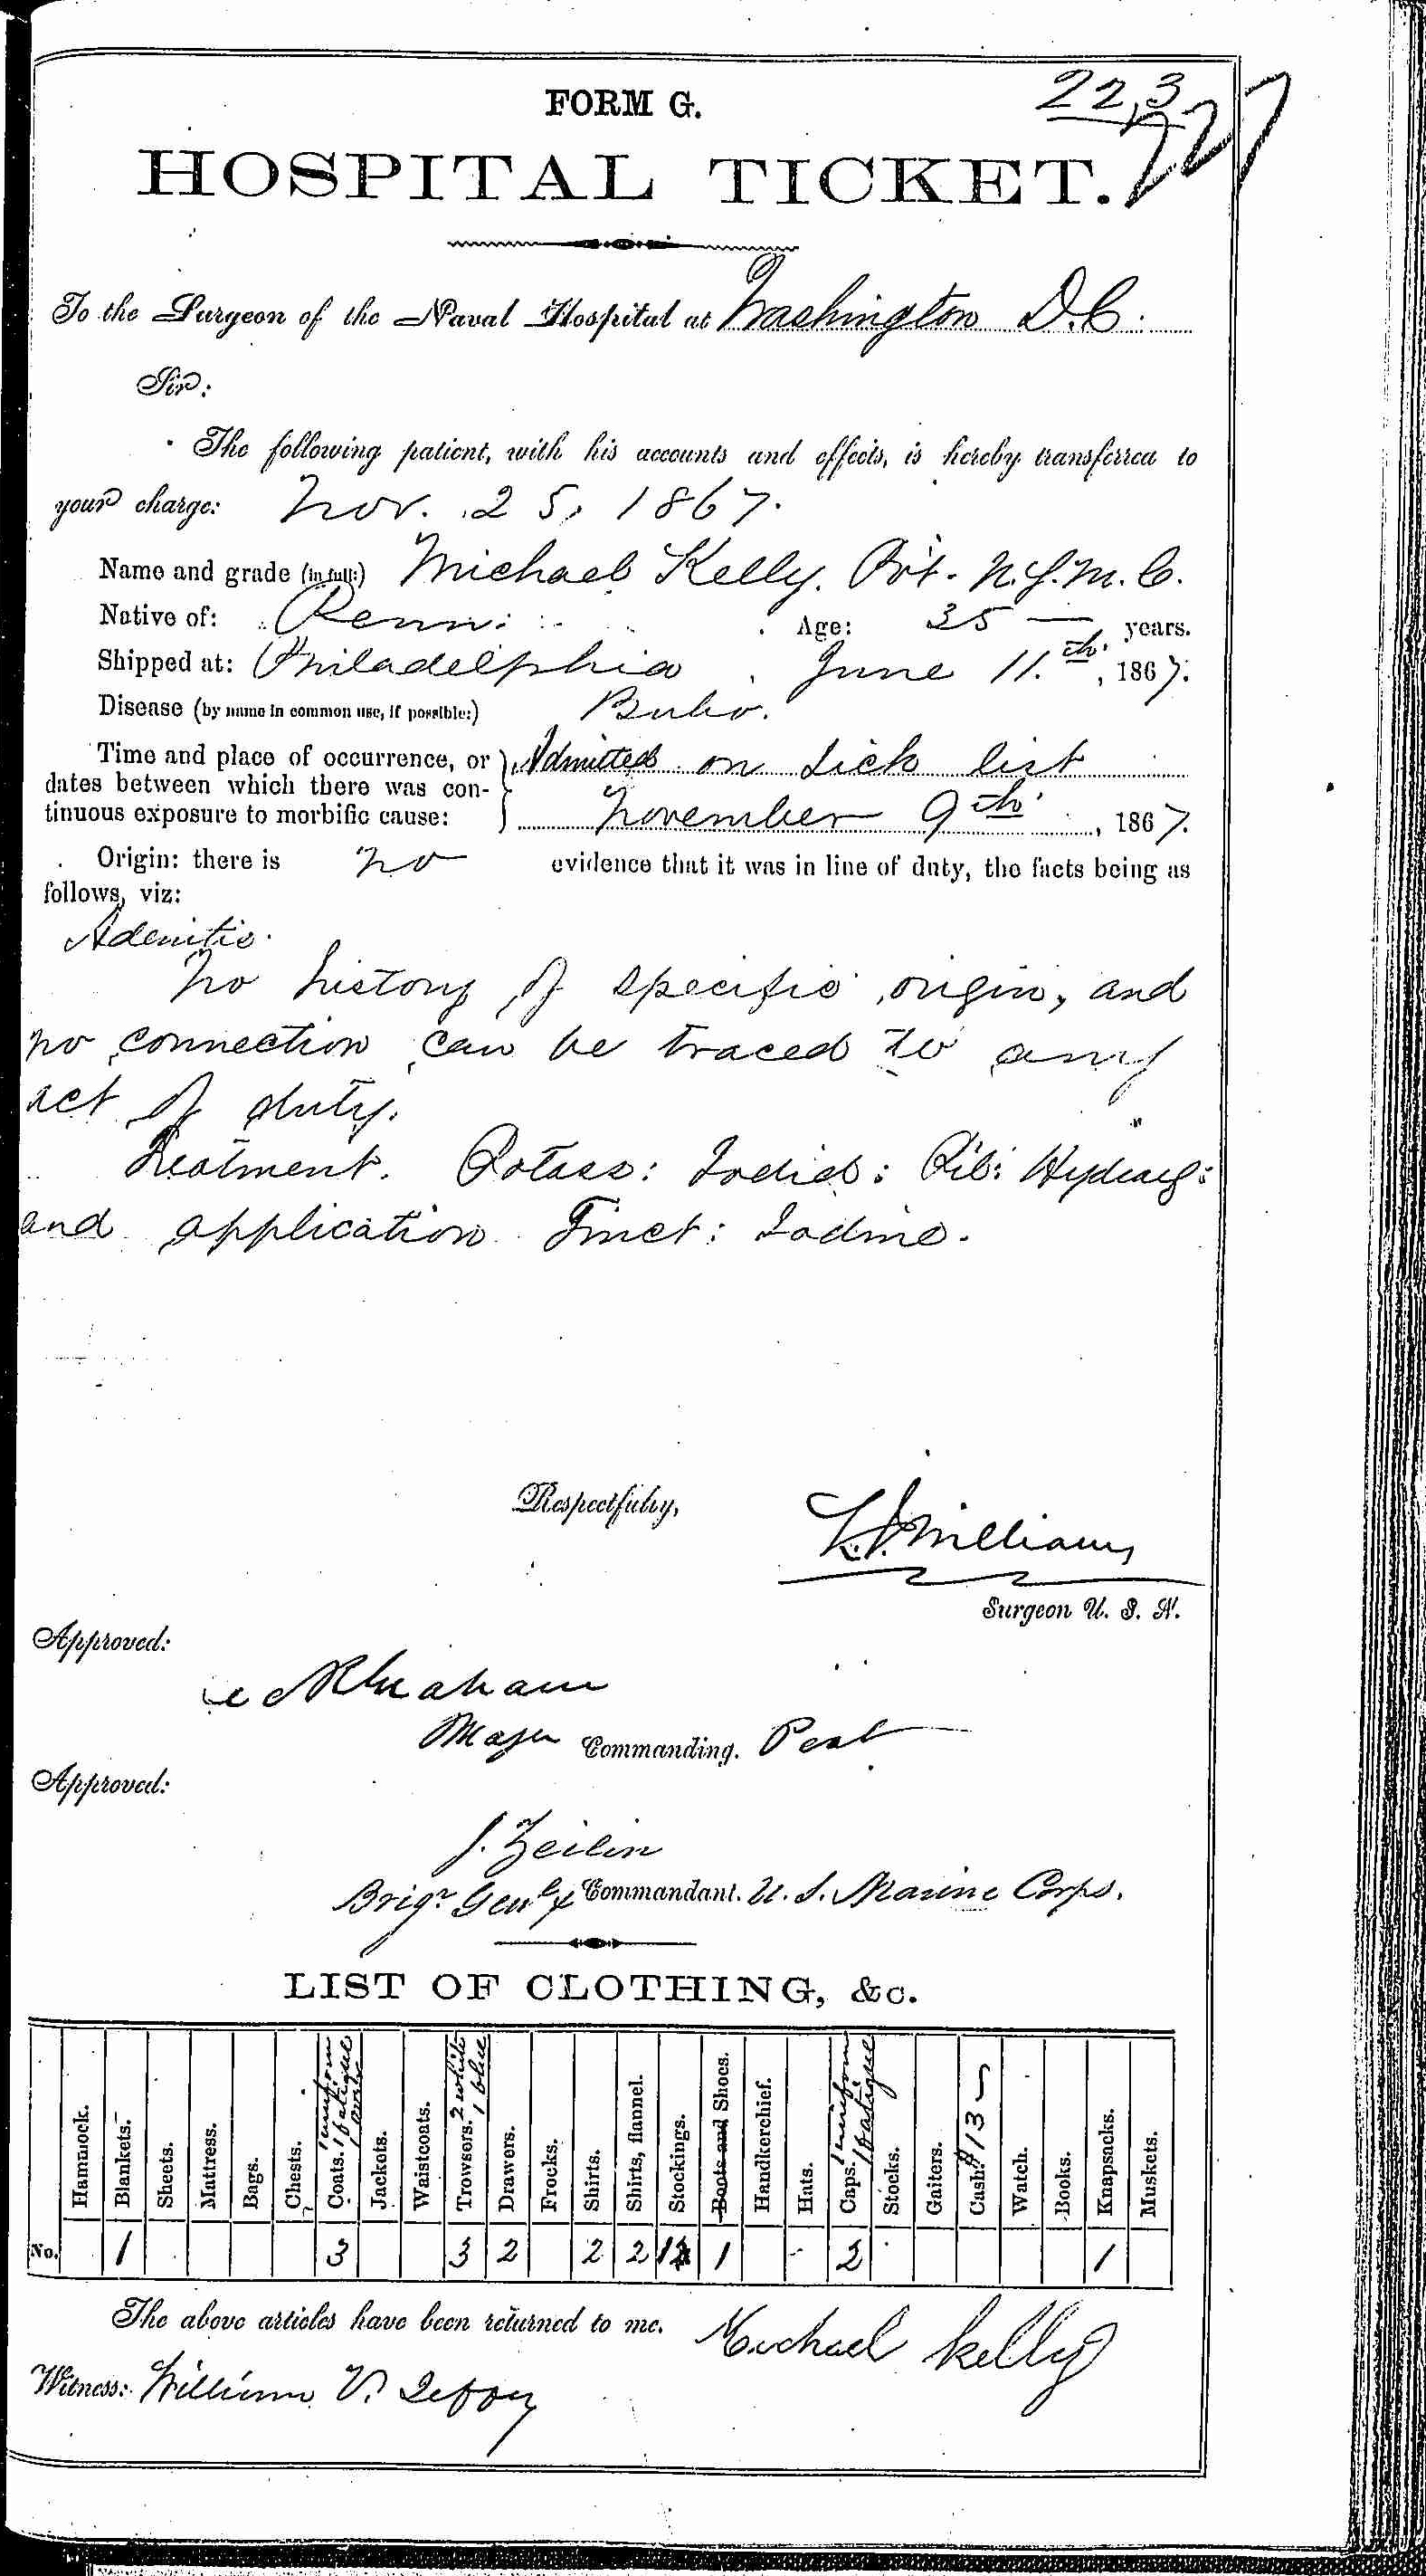 Entry for Michael Kelly (page 1 of 2) in the log Hospital Tickets and Case Papers - Naval Hospital - Washington, D.C. - 1866-68